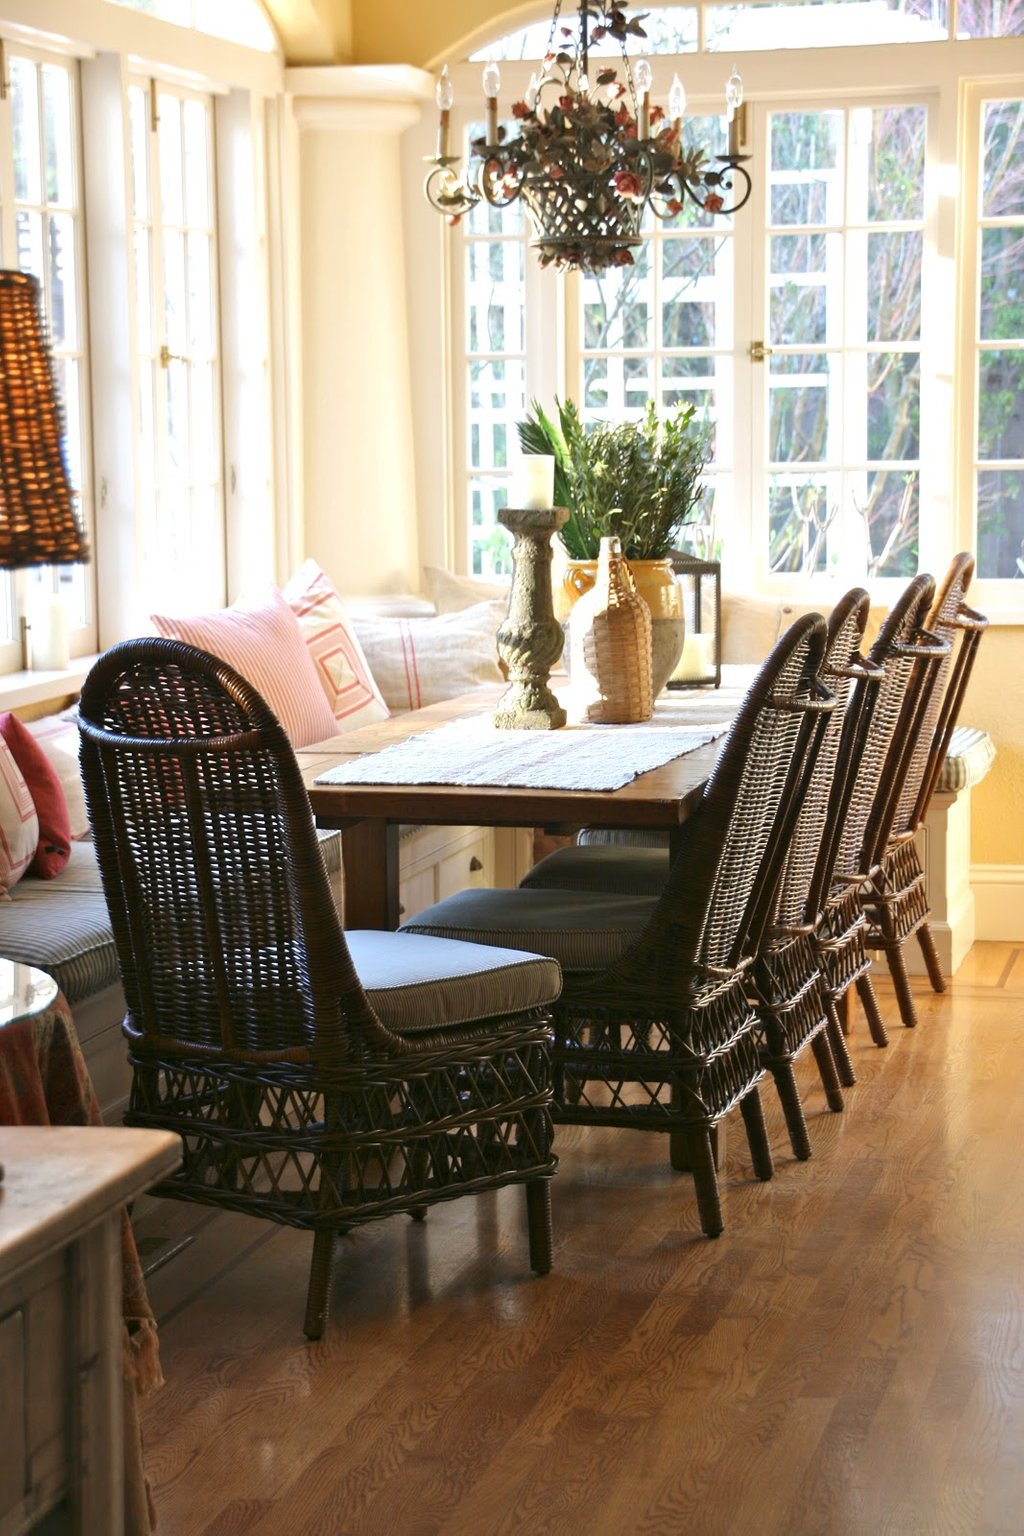 Inspired Classic 1950 Design Material Dr How To Repair Rattan Dining Chairs